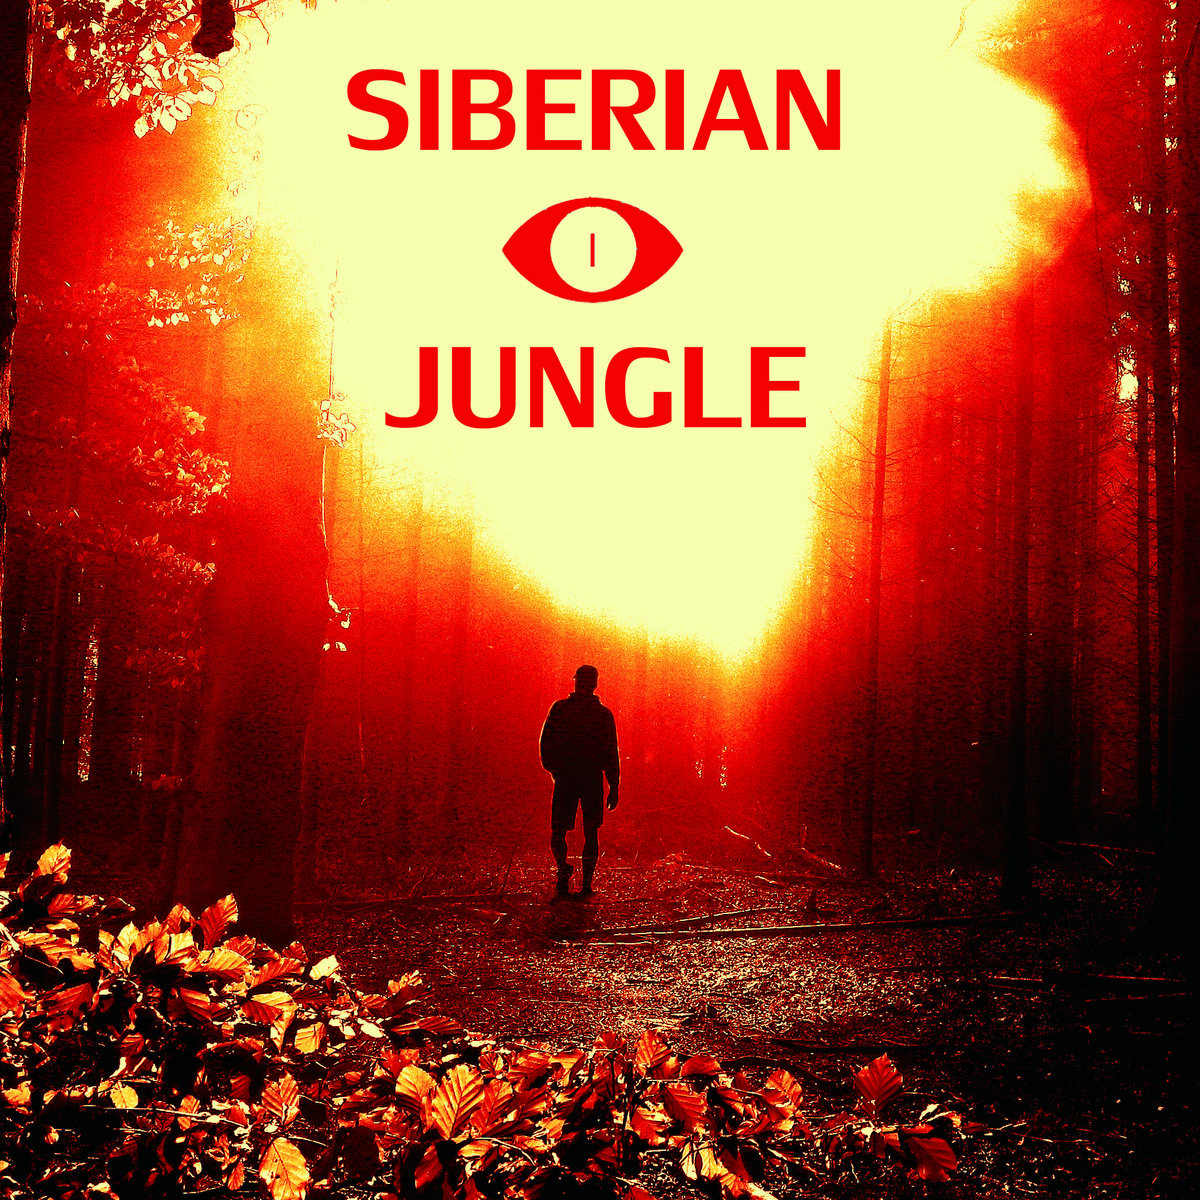 Stipple - STALKER @ 'Siberian Jungle - Volume 1' album (atmospheric drum'n'bass, electronic)